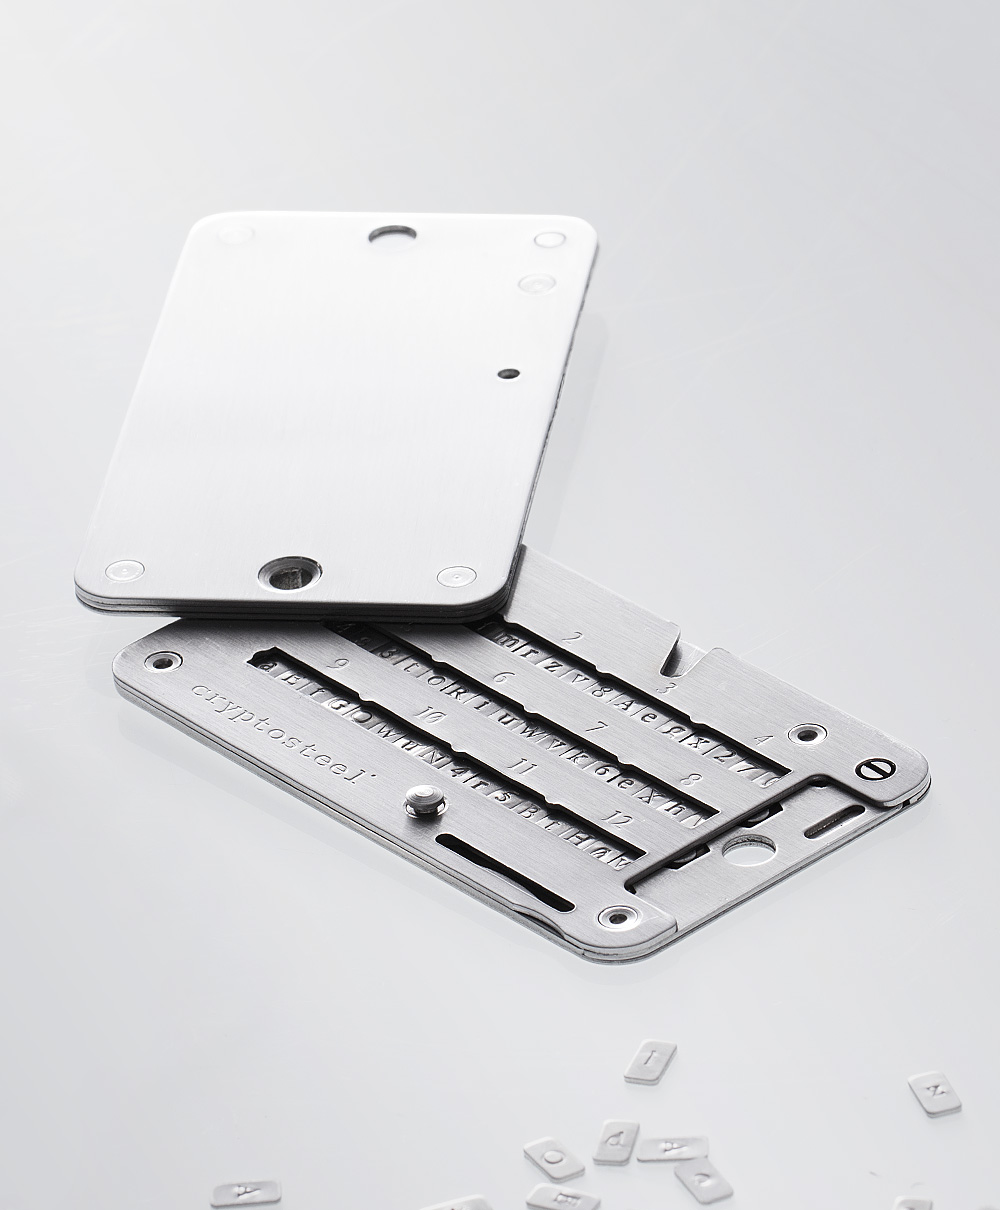 Ledger Card Holder : Ledger cryptosteel review the perfect solution to backup